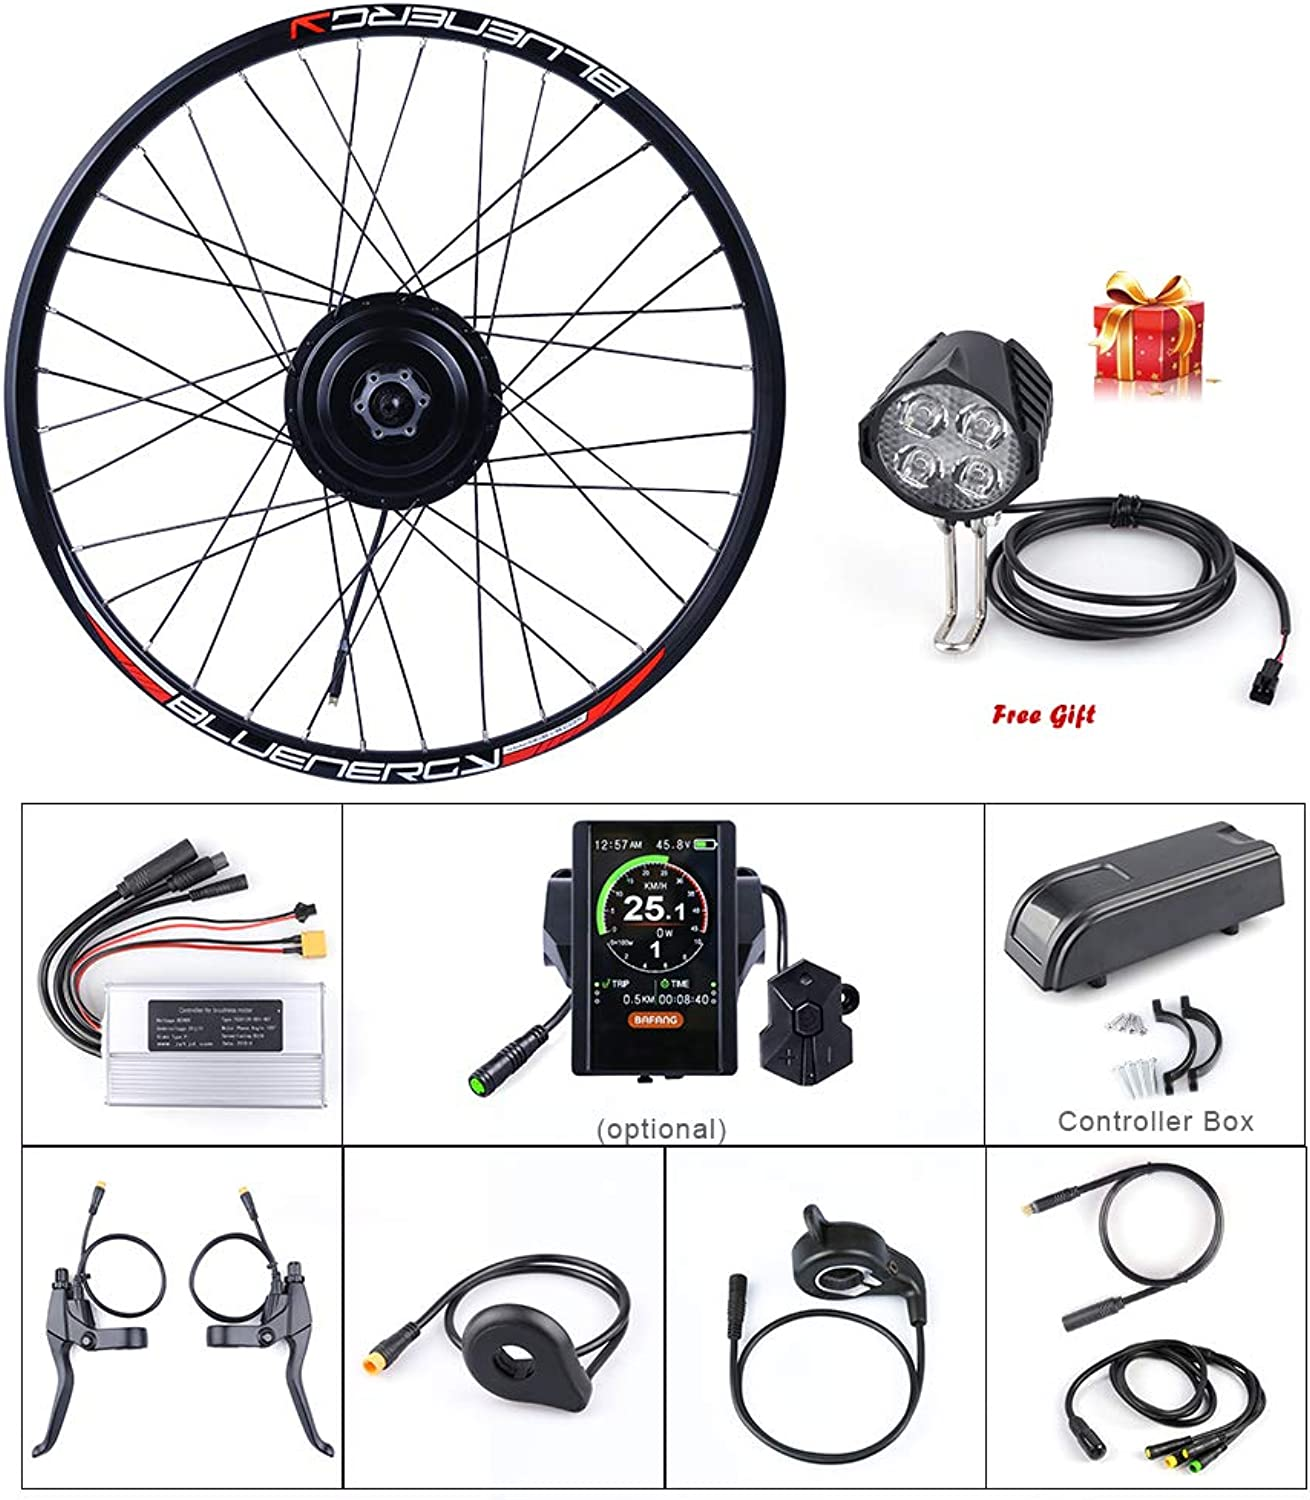 48V 500W Front Hub Motor Brushless Gear Bicycle Electric Bike Conversion Kit with LCD Display for 20 26 27.5 700c inch Wheel Drive Engine